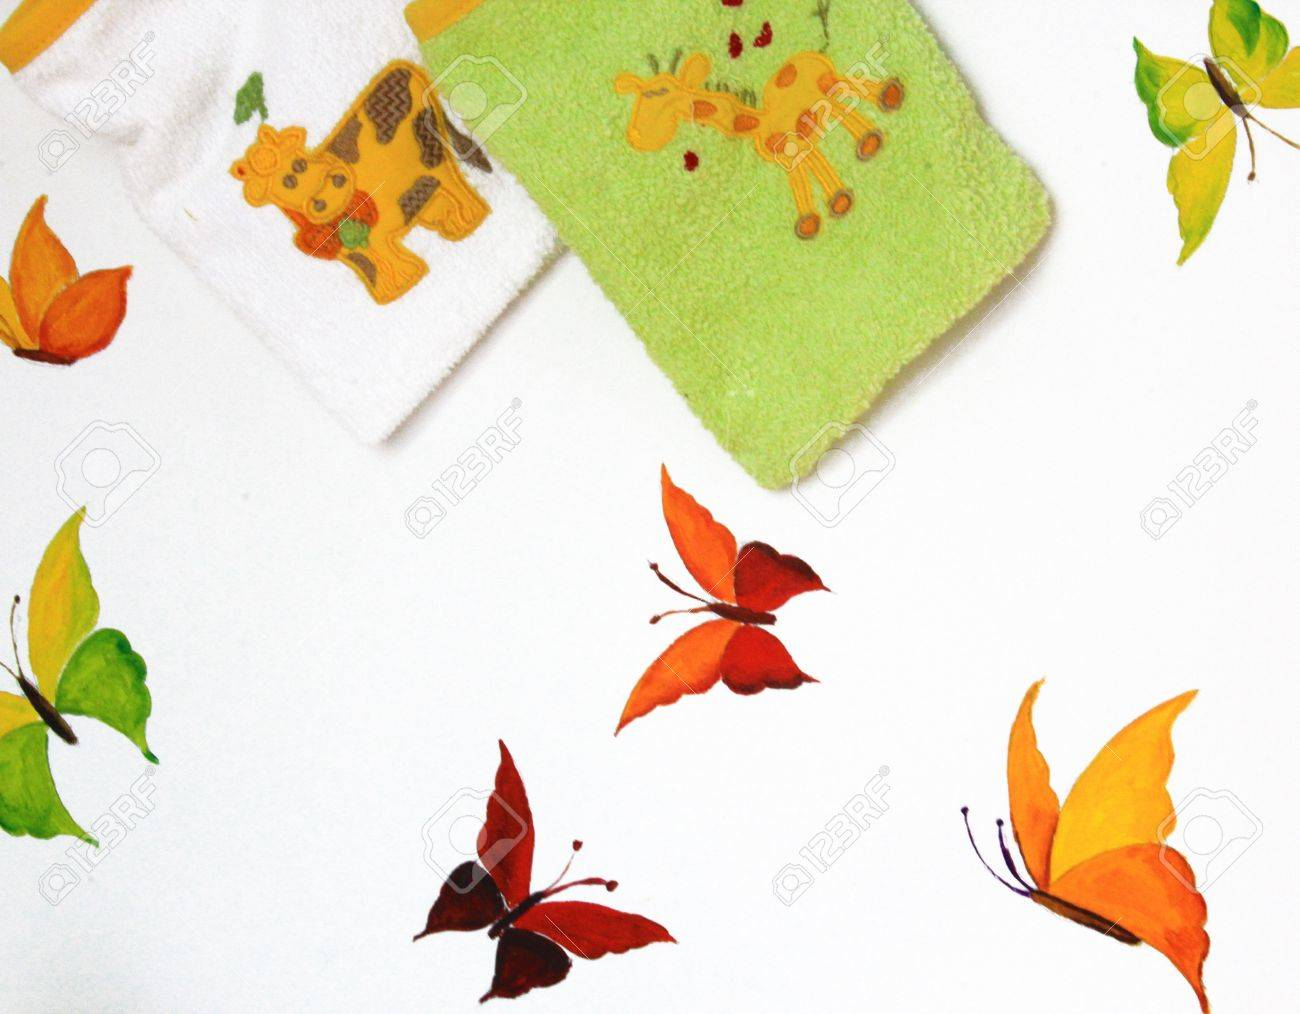 Decoration on wall of children Stock Photo - 11585622